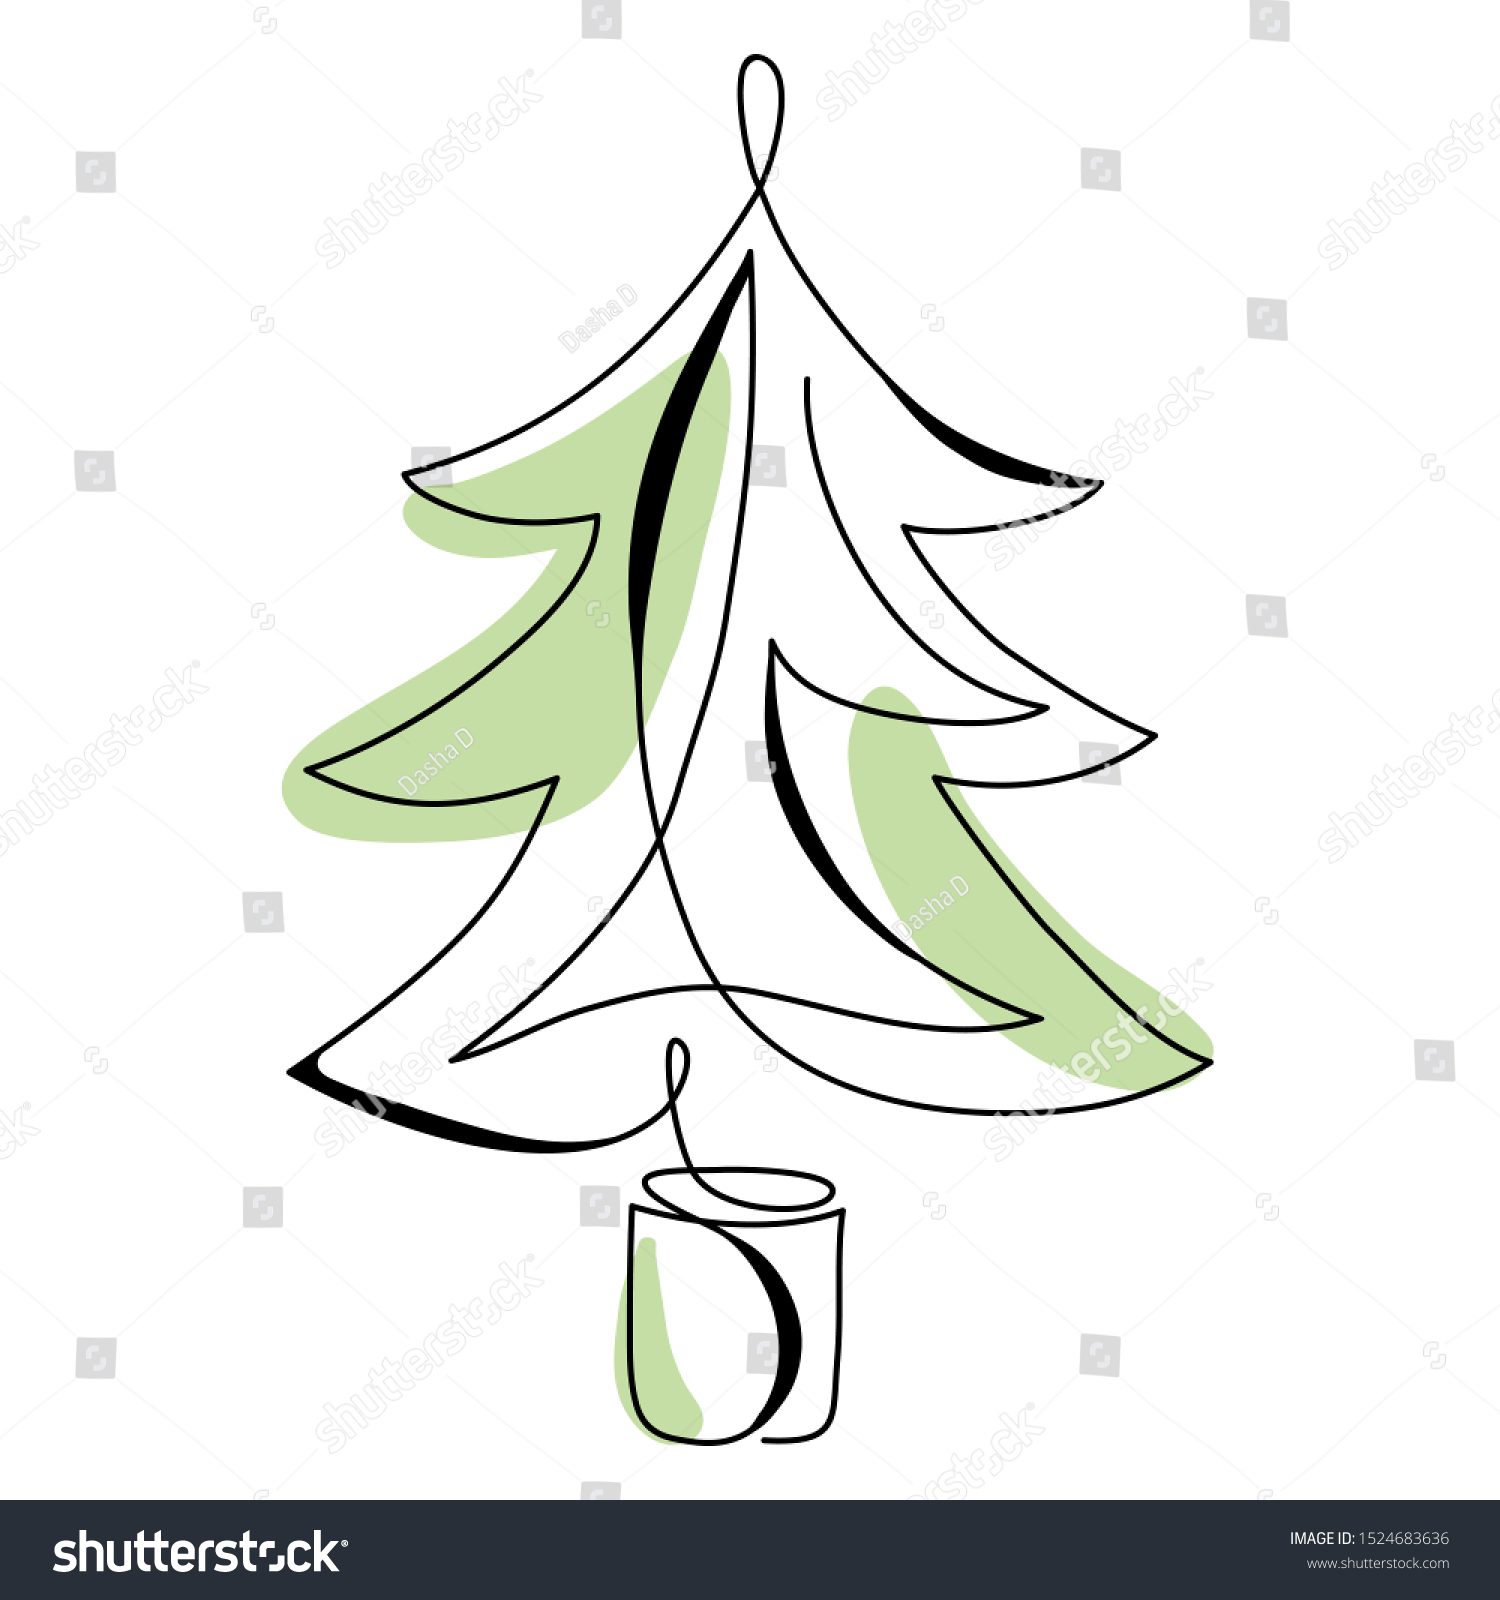 Continuous Line Drawing Abstract Christmas Tree Stock Vector Royalty Free 1524683636